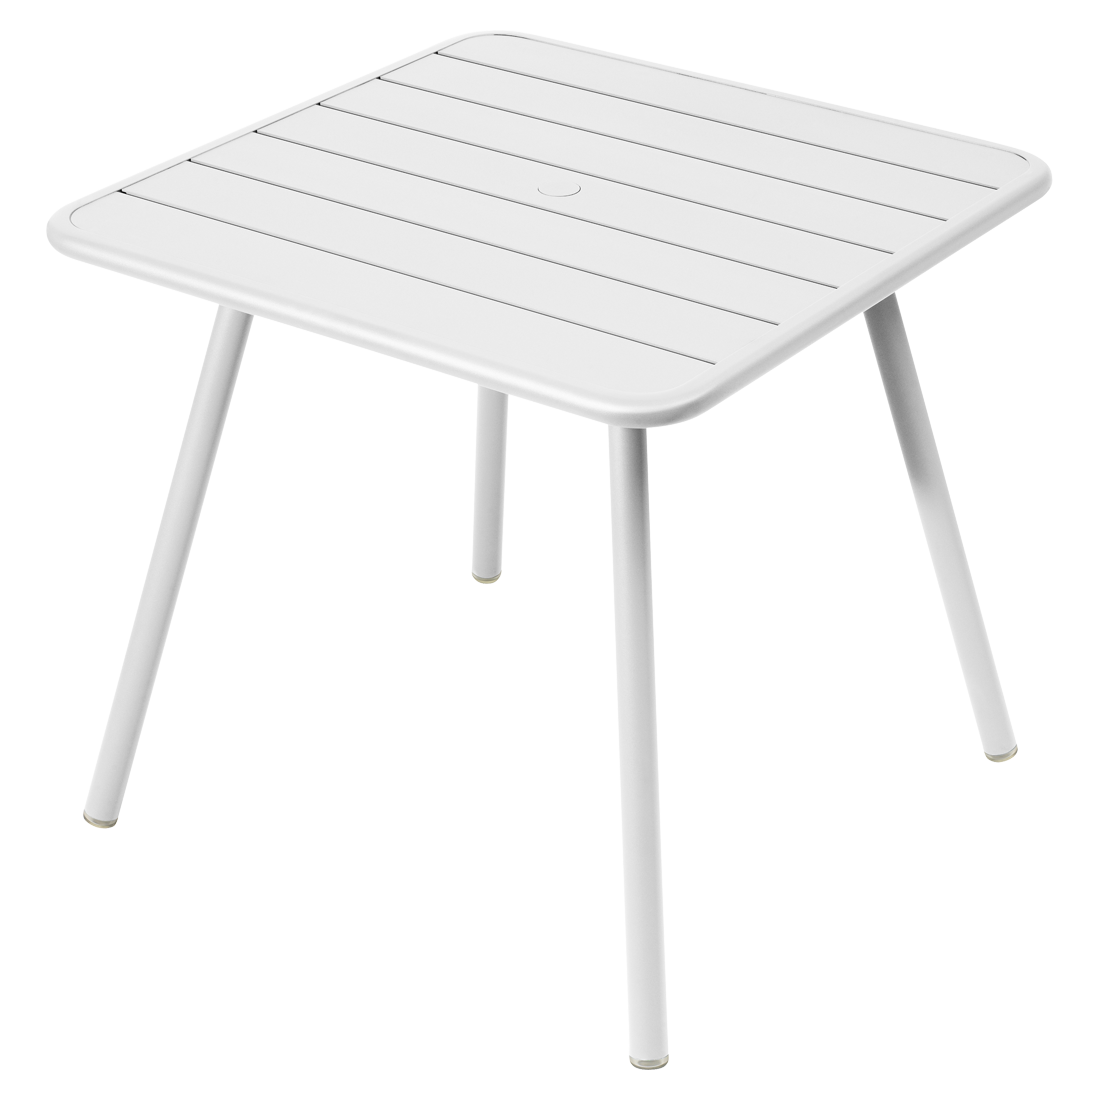 Table Blanche Table De Jardin Table Metal Table 4 Places Table Blanche Table